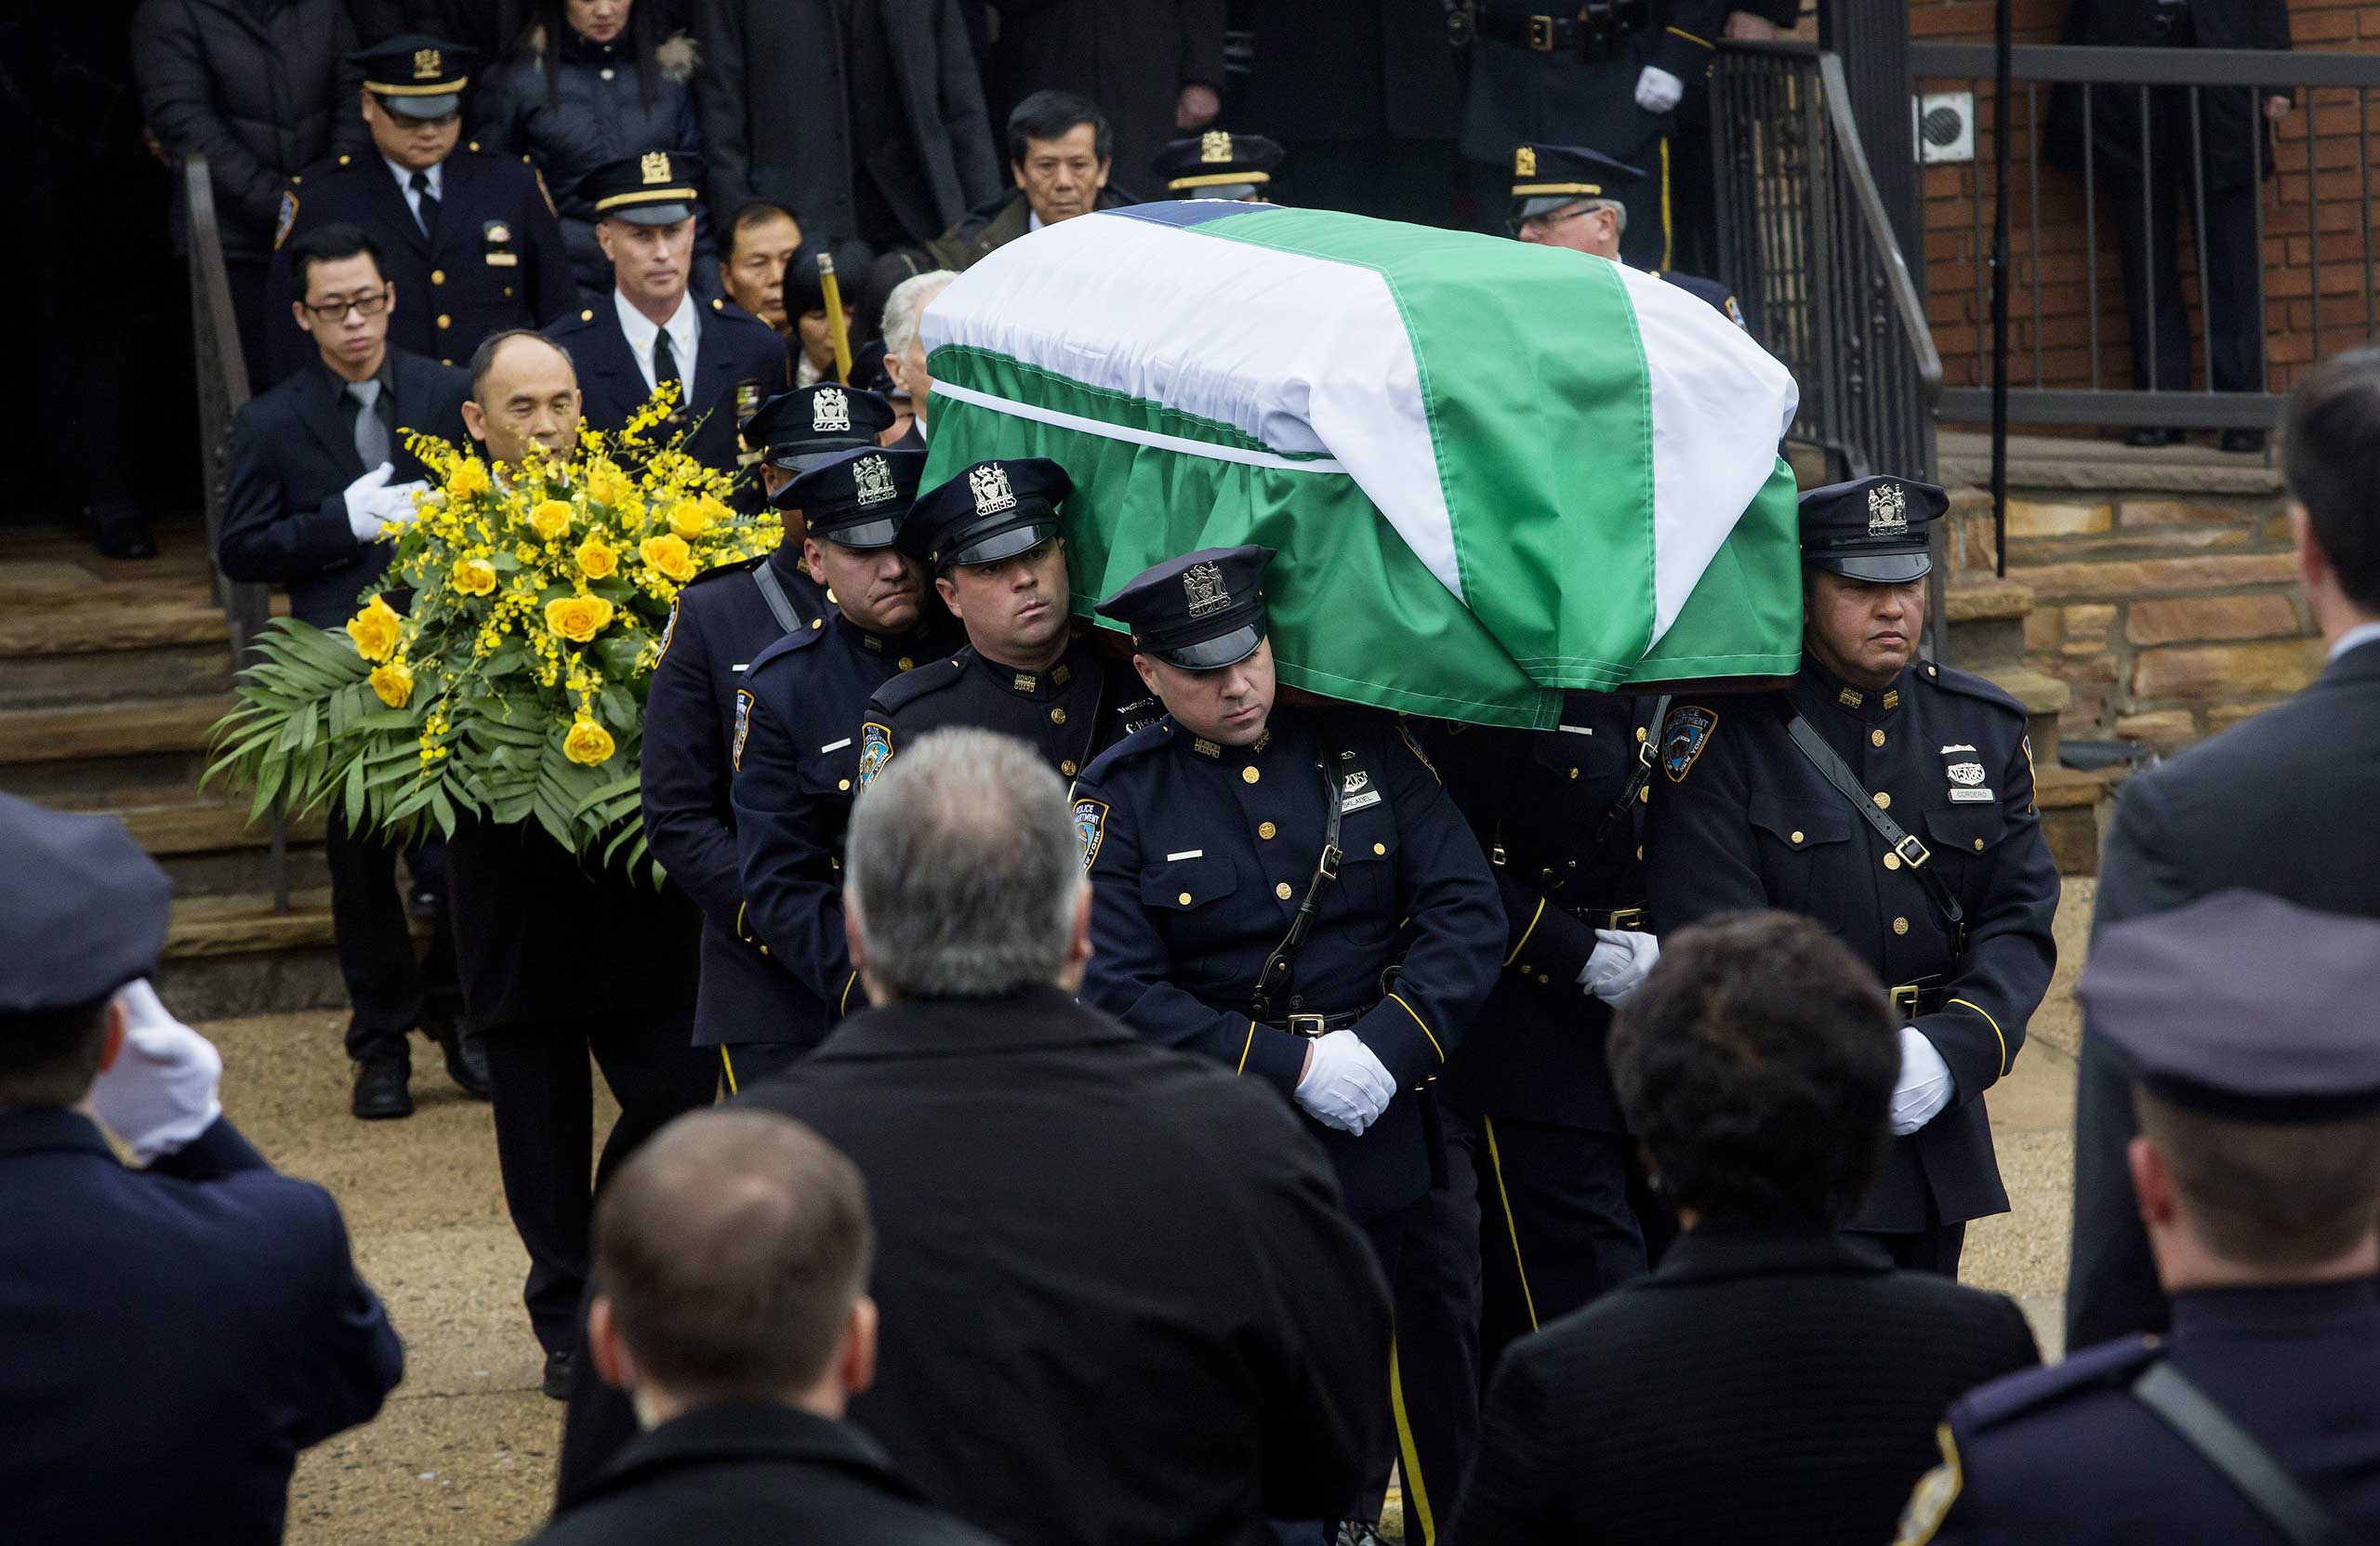 Officers carry the casket of Police Officer Wenjian Liu from a funeral service at on Jan. 4, 2015 in the Brooklyn borough of New York.